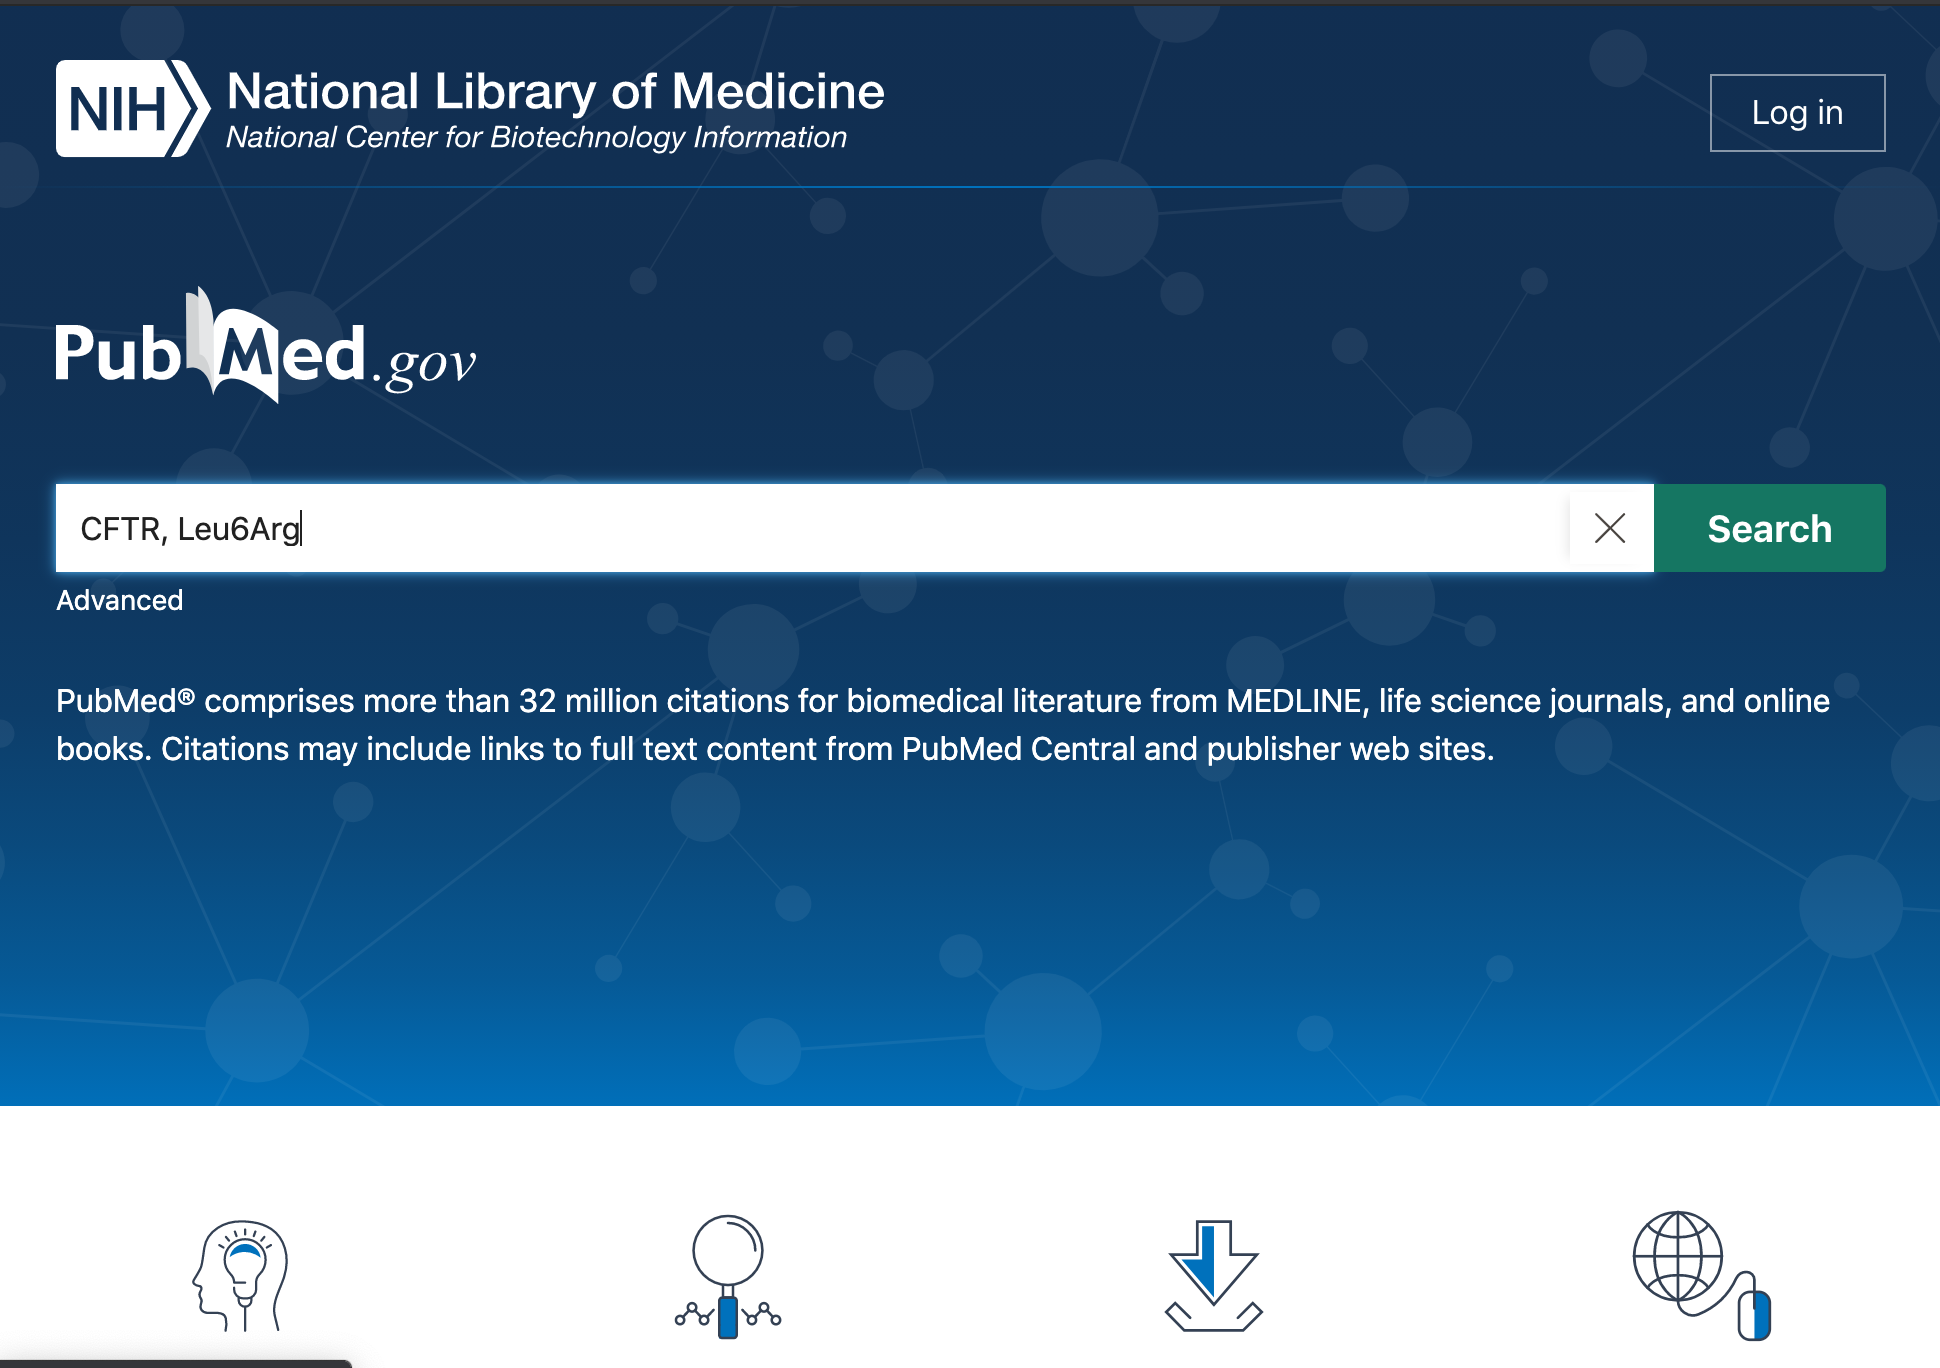 Screenshot of the homepage on the website ncbi.nlm.nih.gov/pubmed